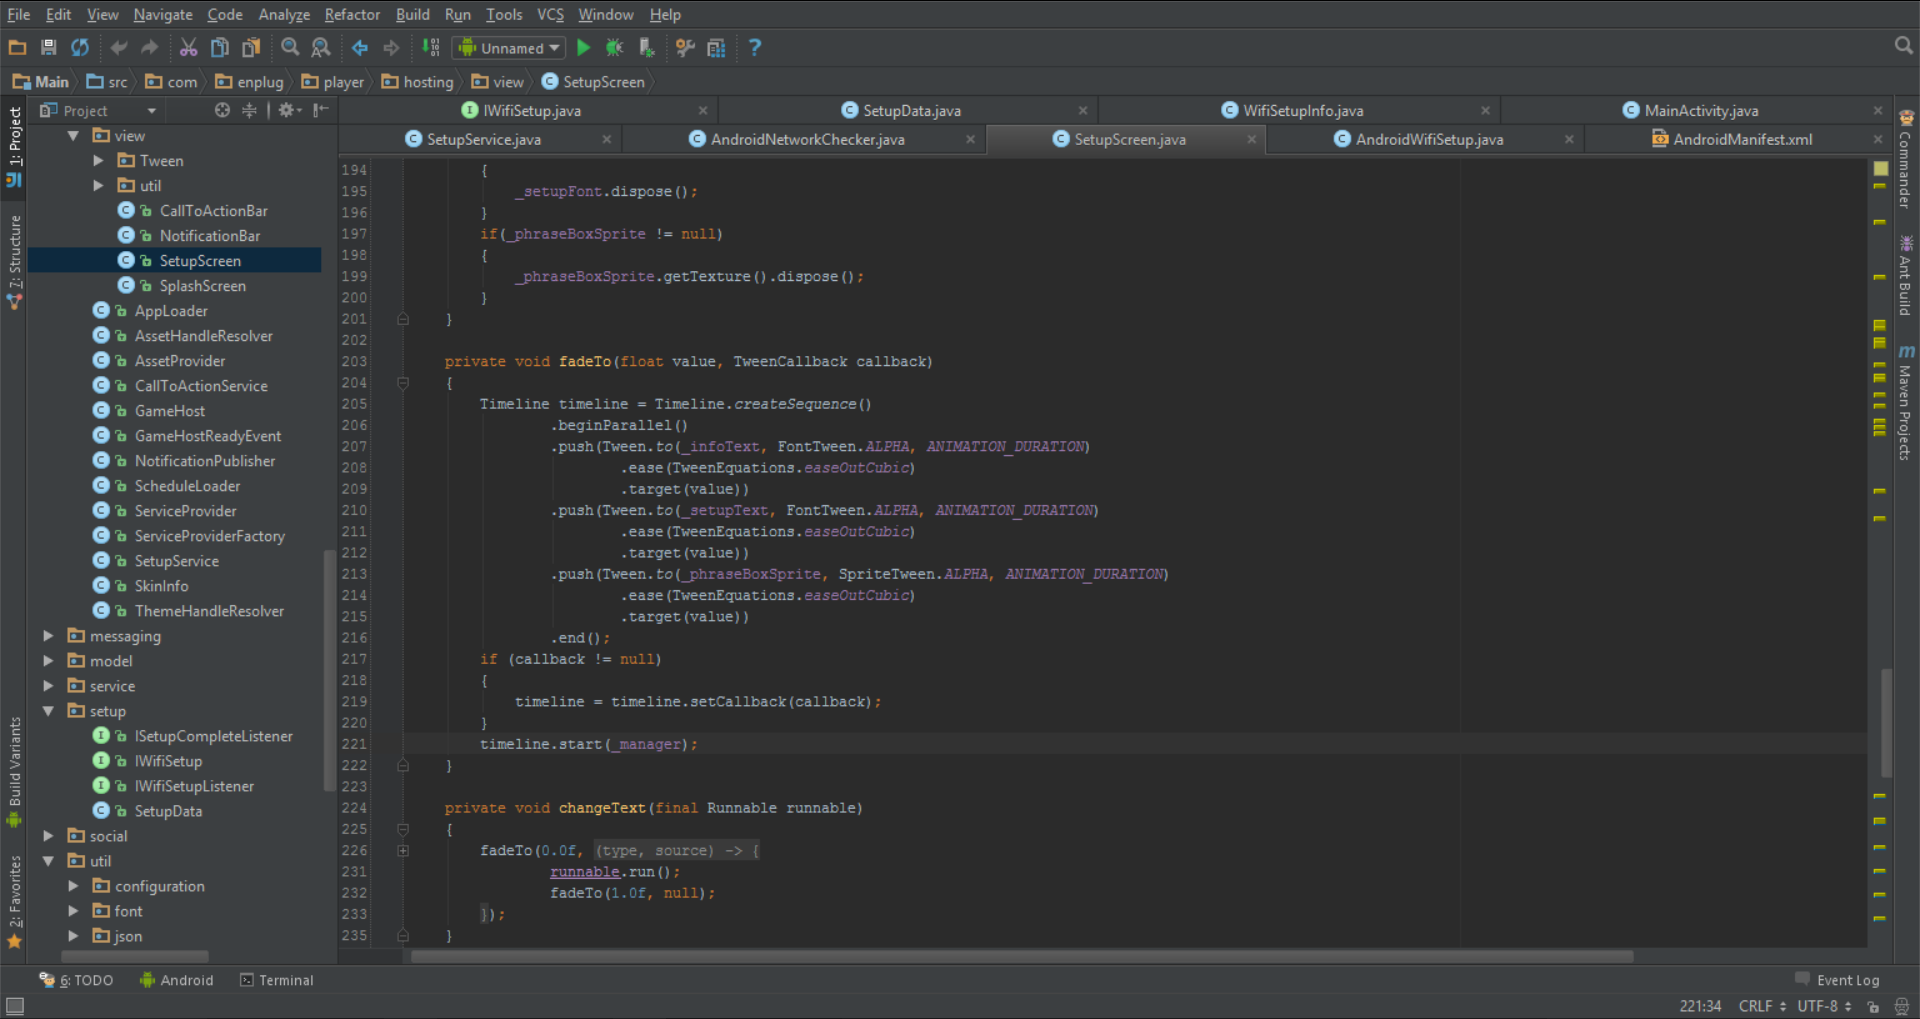 Enplug: IntelliJ IDEA